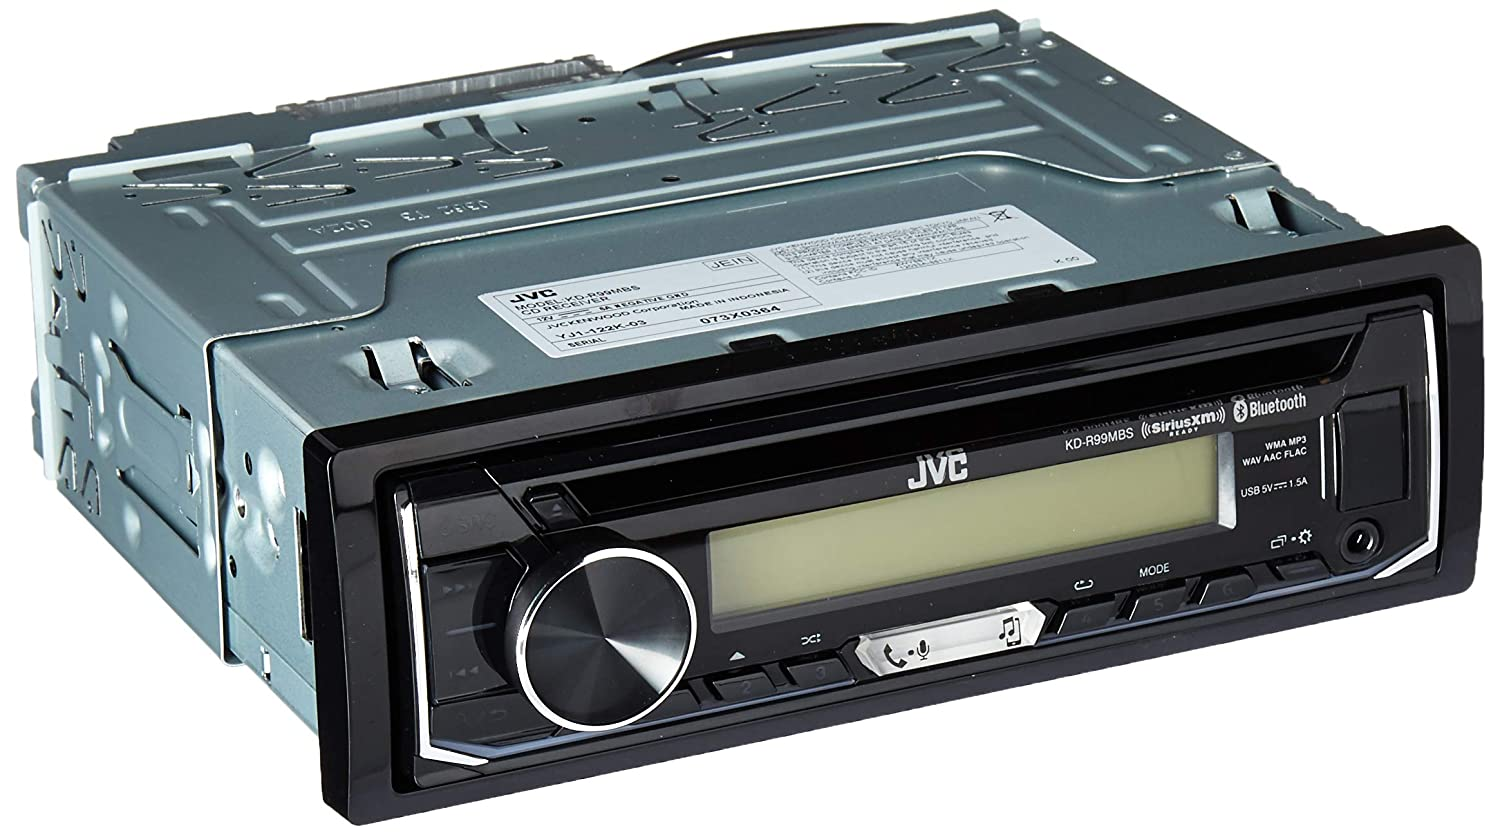 Amazon.com: JVC KD-R99MBS Marine Motorsports iPod & Android CD Receiver  with Bluetooth: Cell Phones & Accessories